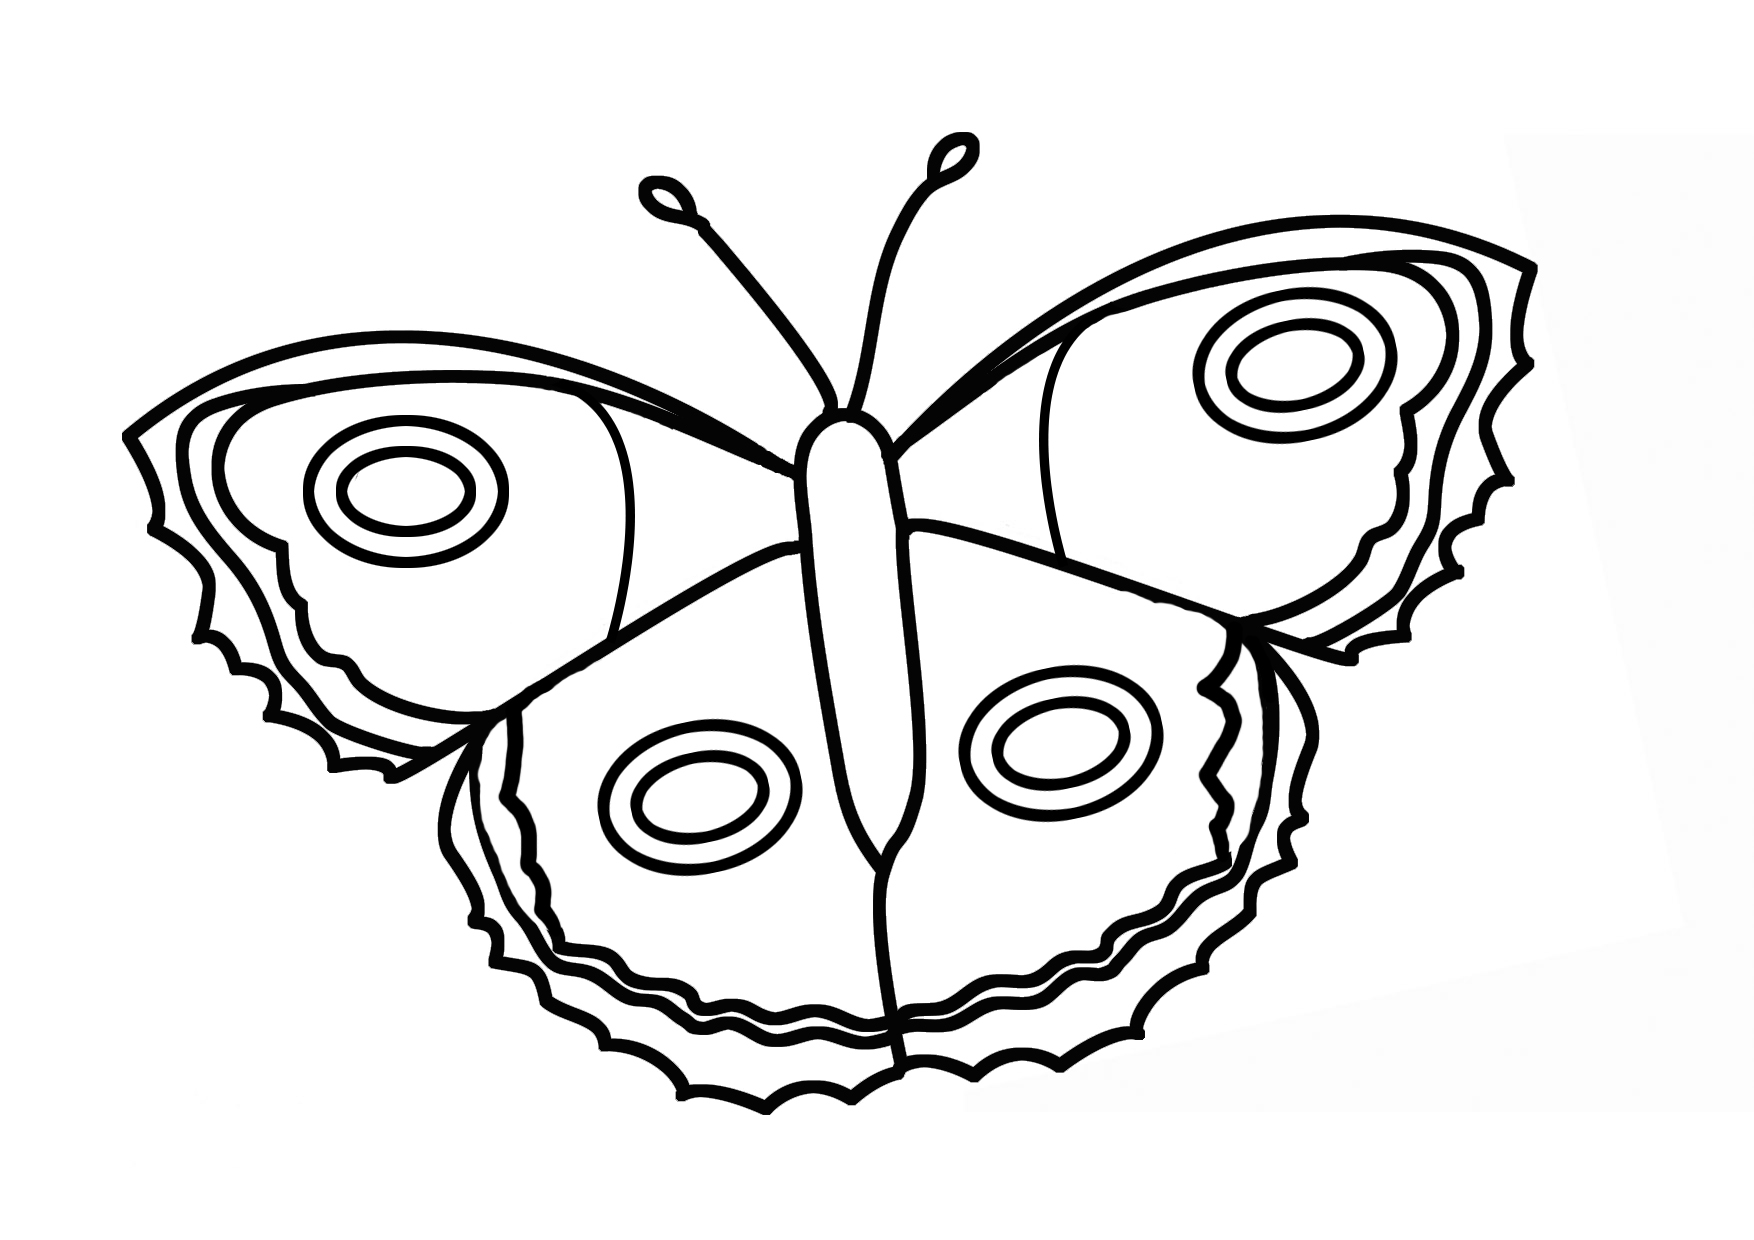 Butterfly coloring page symmetry - More Butterfly Coloring Sheets